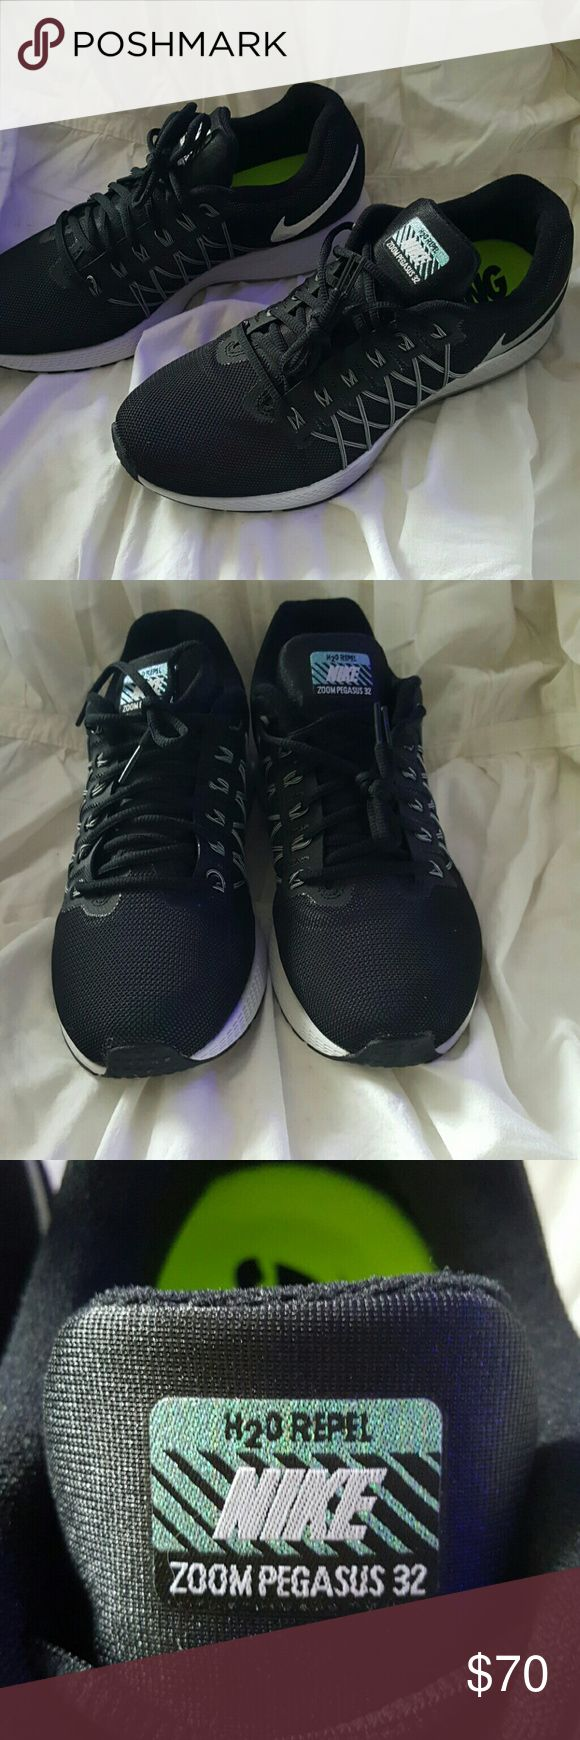 Nike Zoom Pegasus 32 New Nike Zoom Pegasus 32 New without box. H2O repel. Never worn. Nike Shoes Sneakers